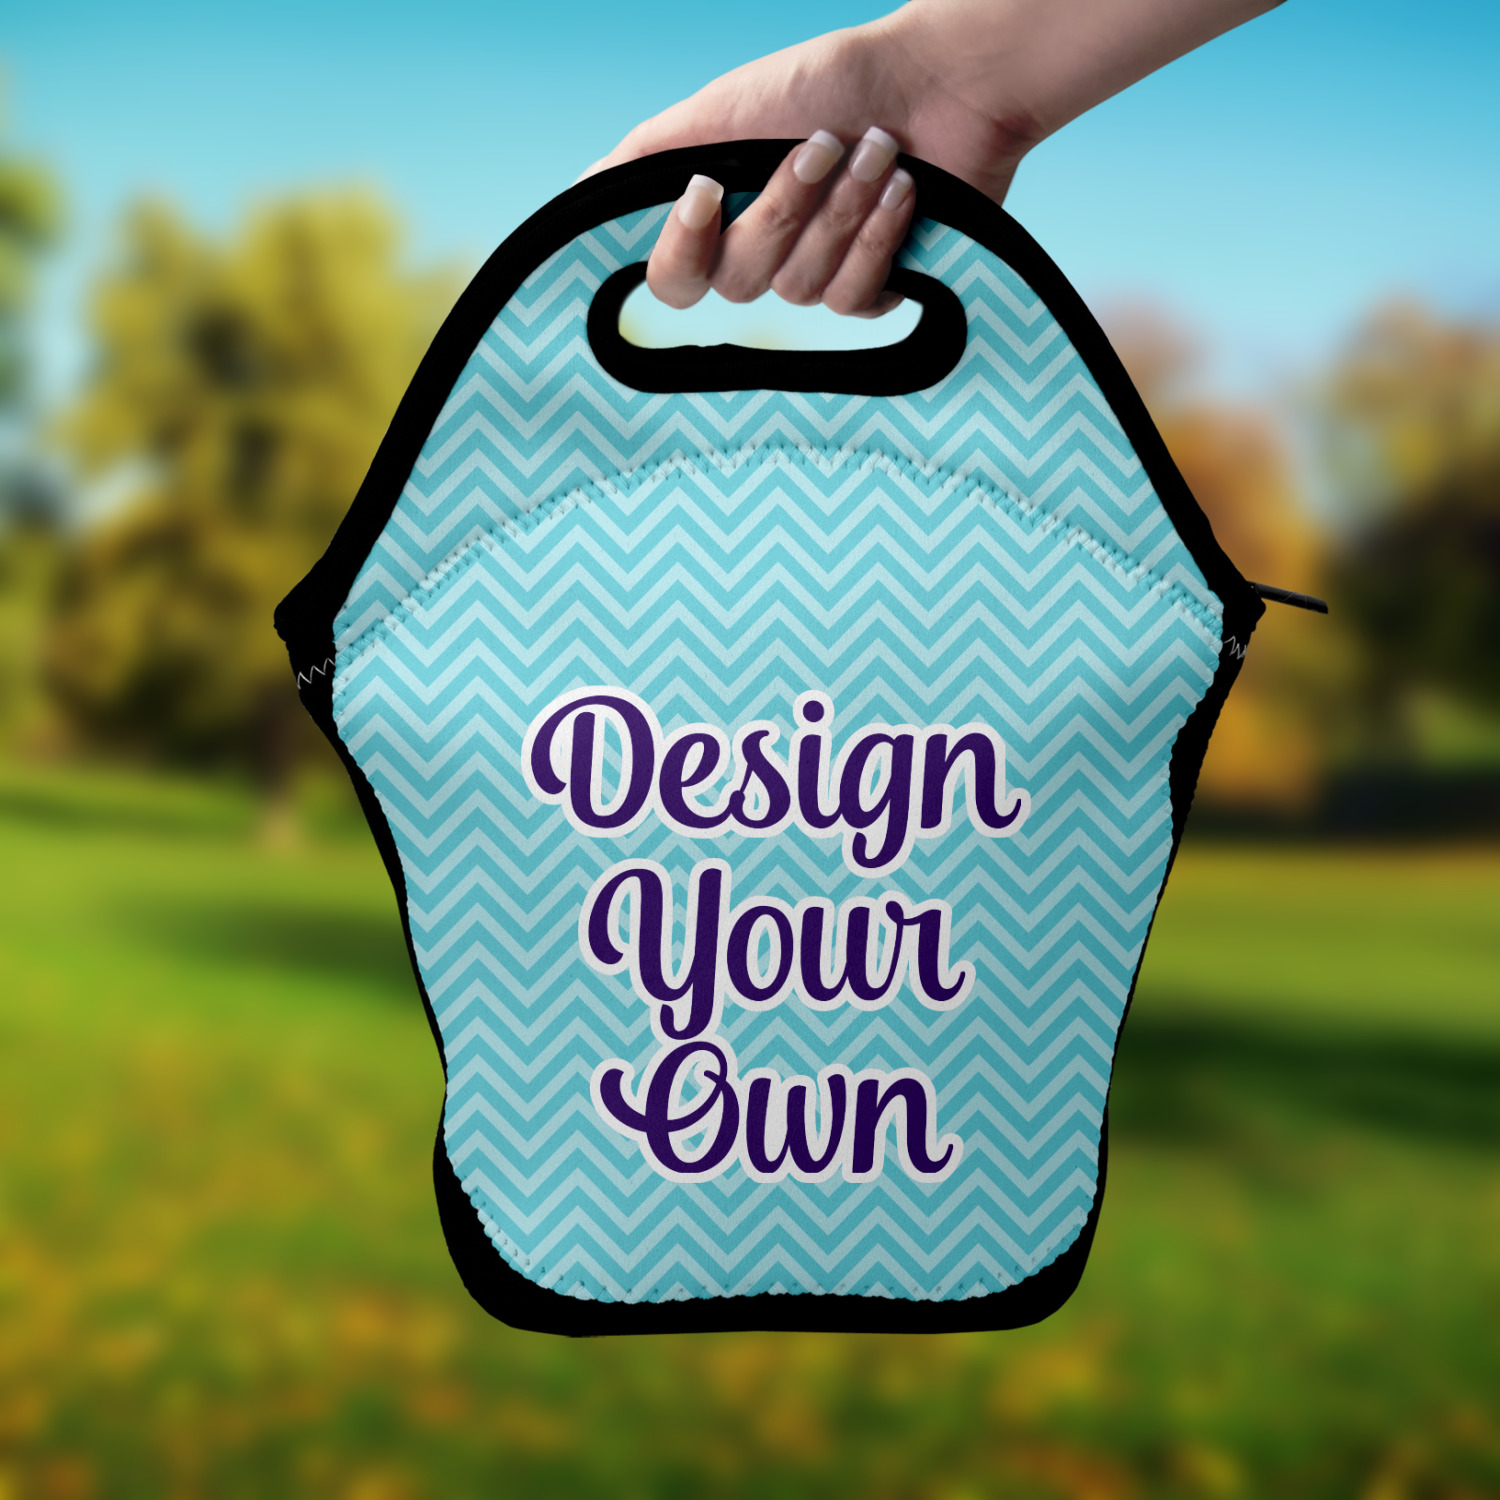 eb26bd0e65e7 Design Your Own Personalized Lunch Bag